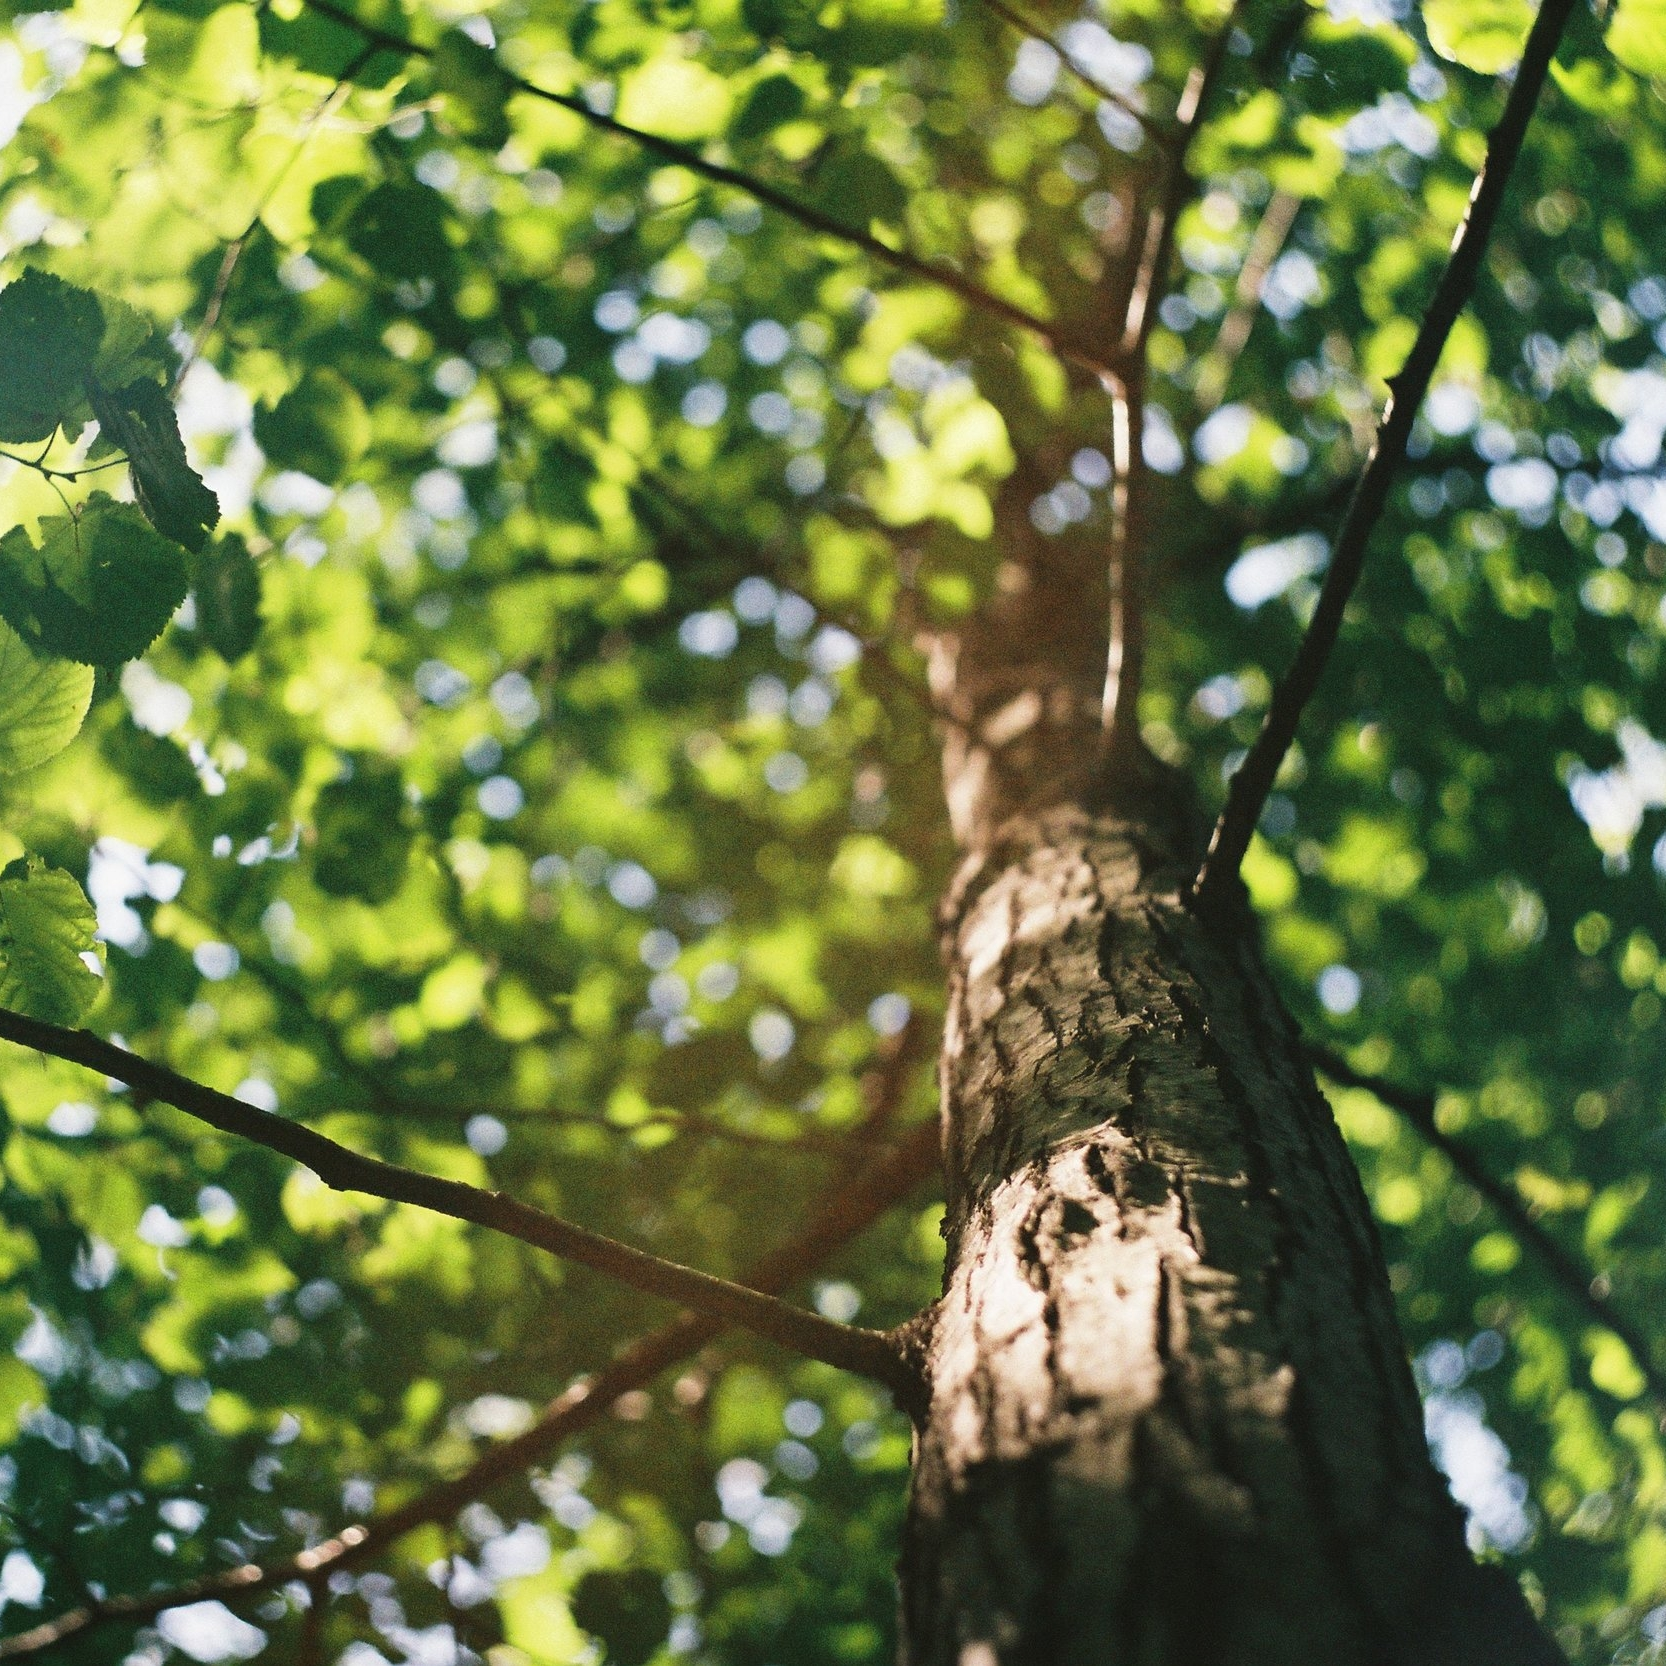 550,000+ - Paper Culture has donated more than 550,000 trees to date.